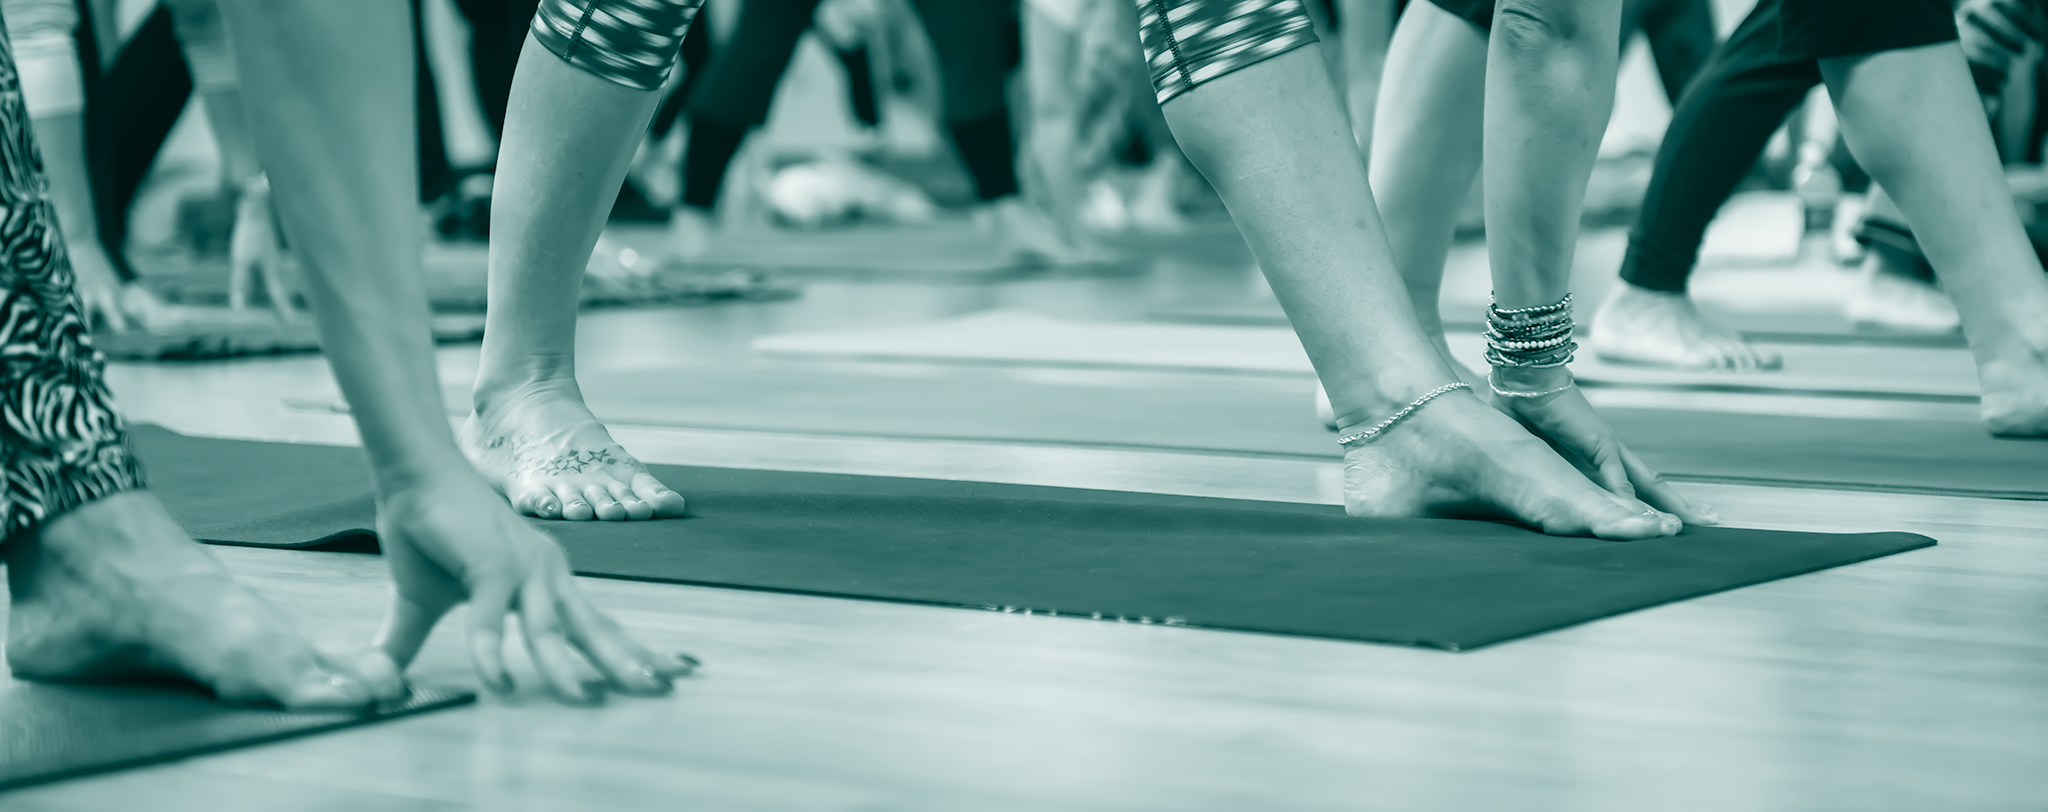 Blue tinted banner picture - showing the feet of people doing yoga